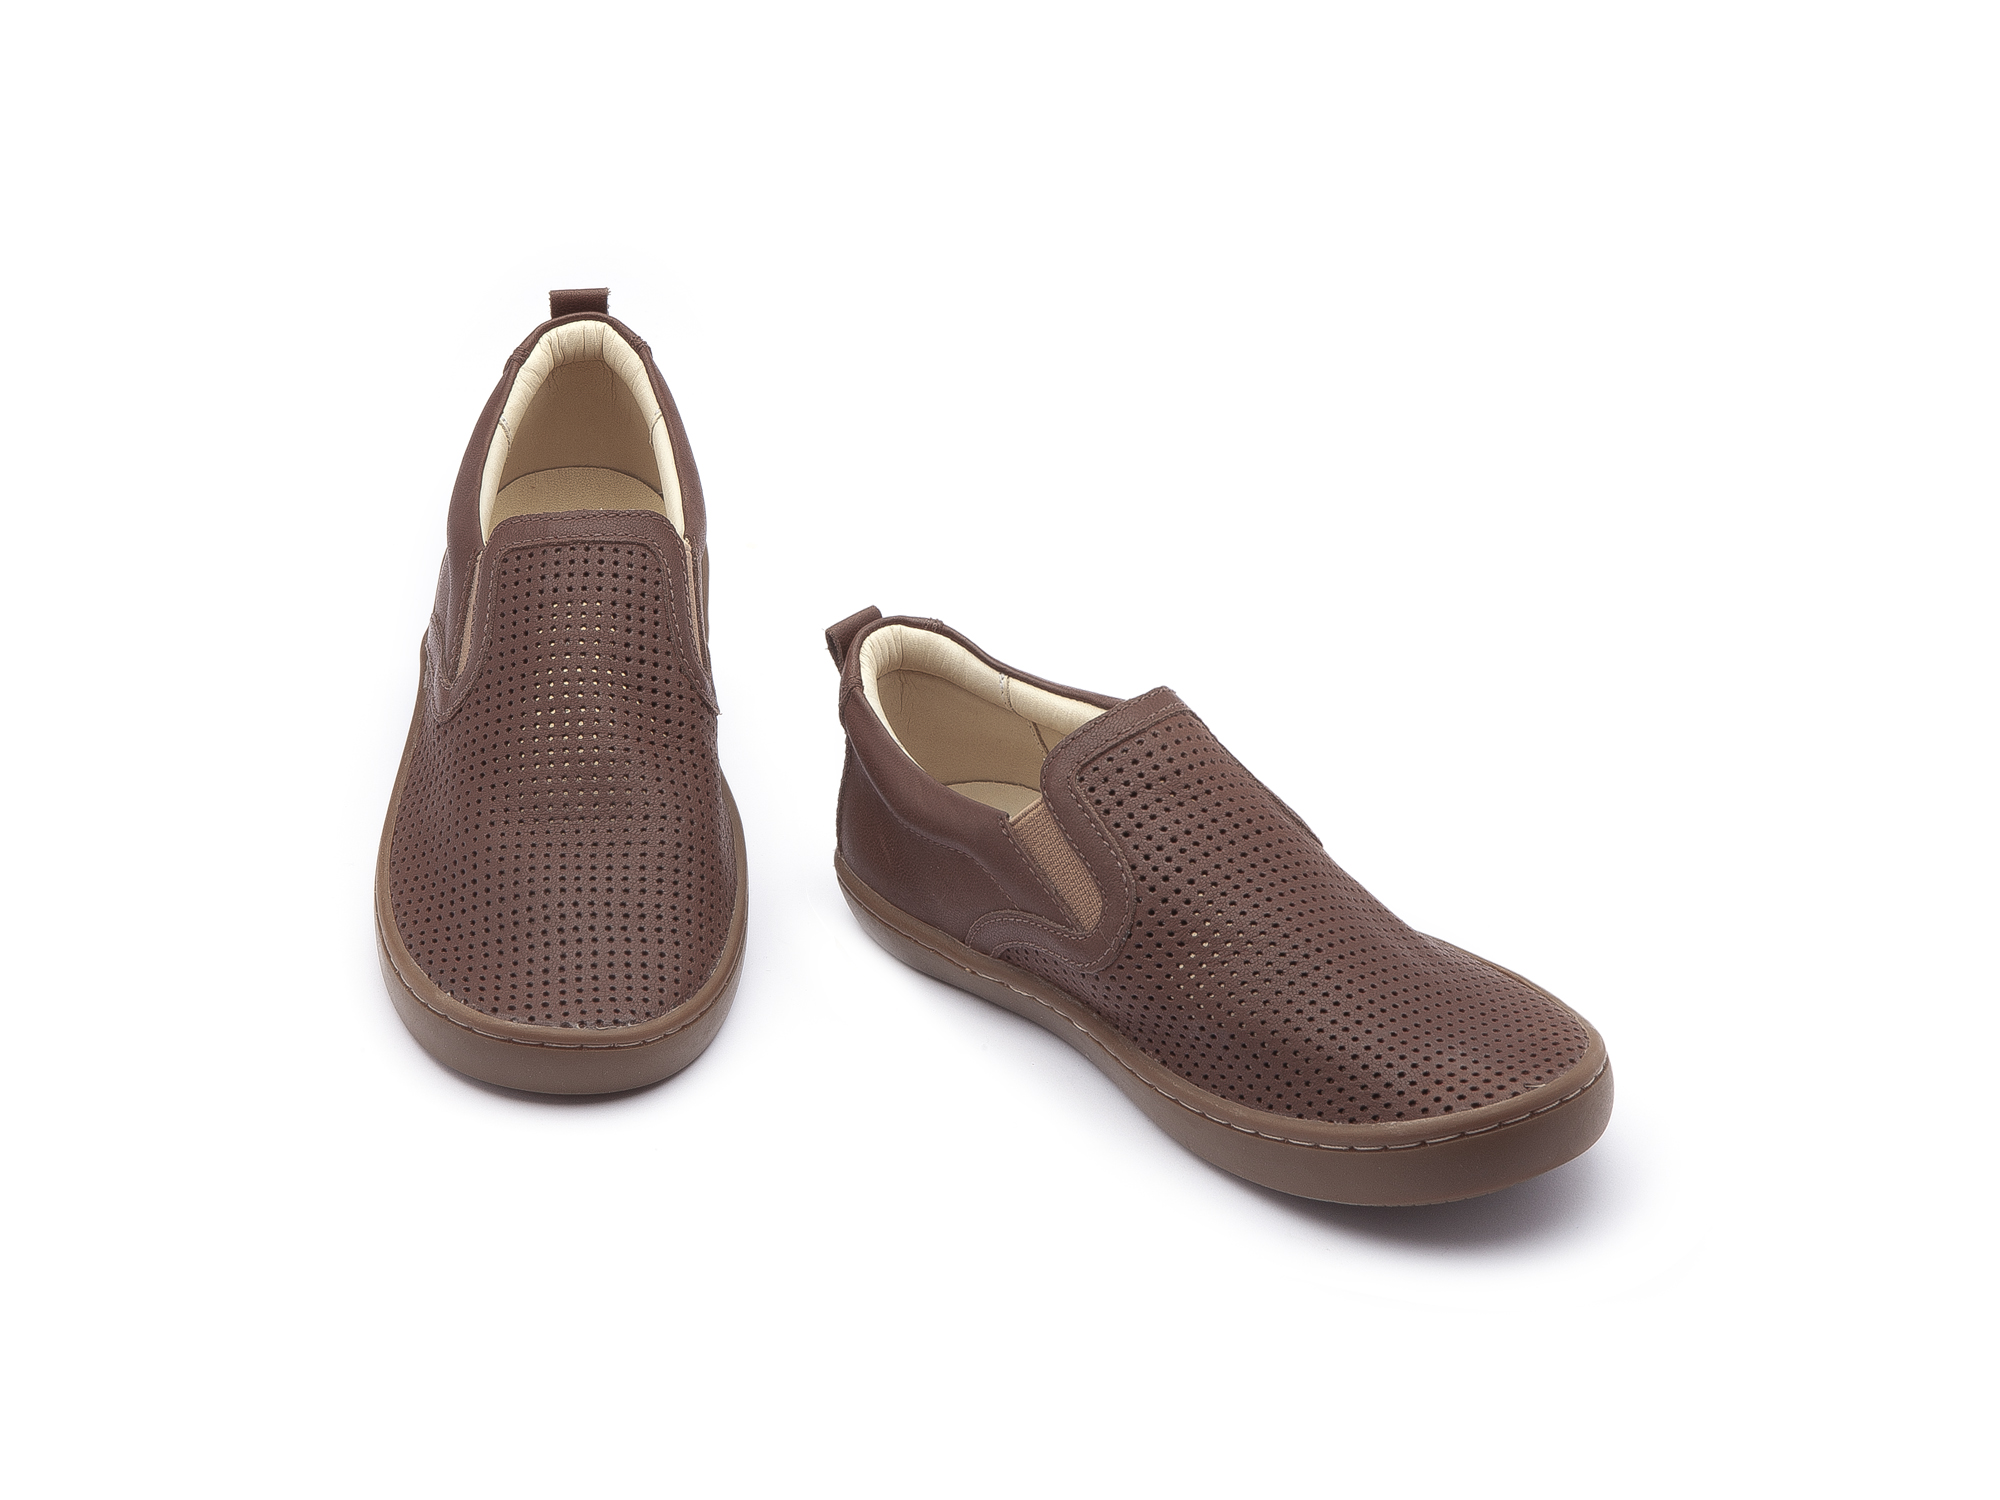 Sneaker Casual Straw Old Brown Holes/ Old Brown Junior 4 à 8 anos - 2